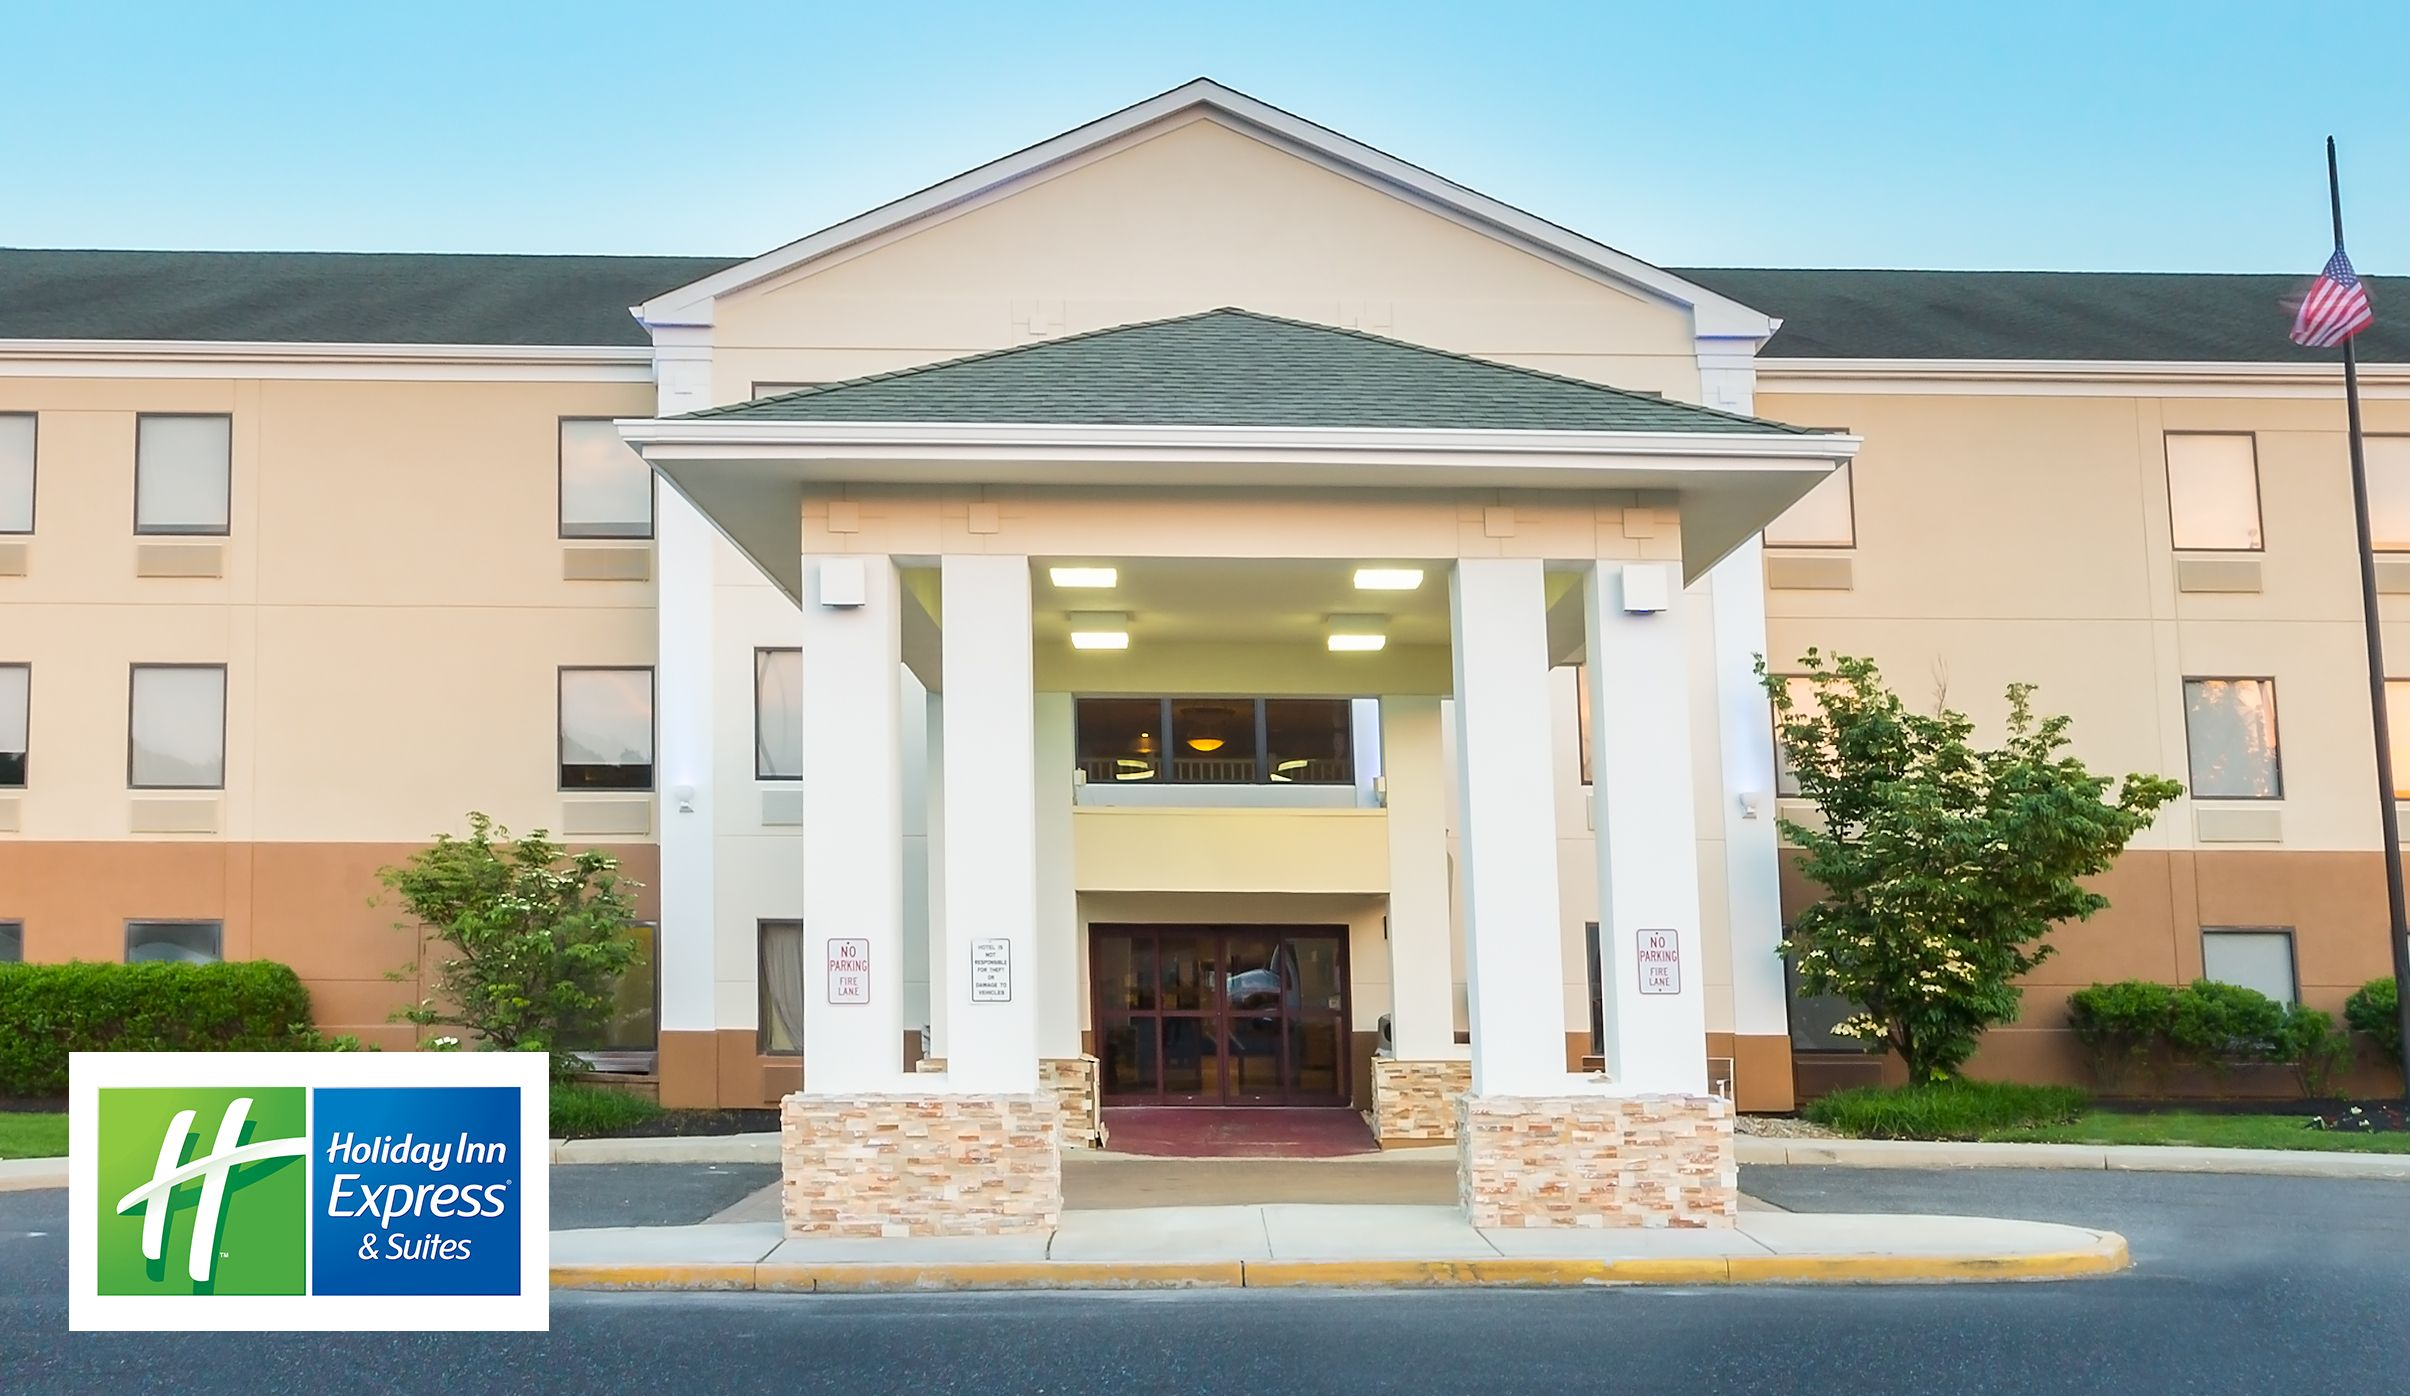 Welcome To The Holiday Inn Express Suites Mt Holly Nj Tnpk Exit 5 Holiday Inn Inn Suites